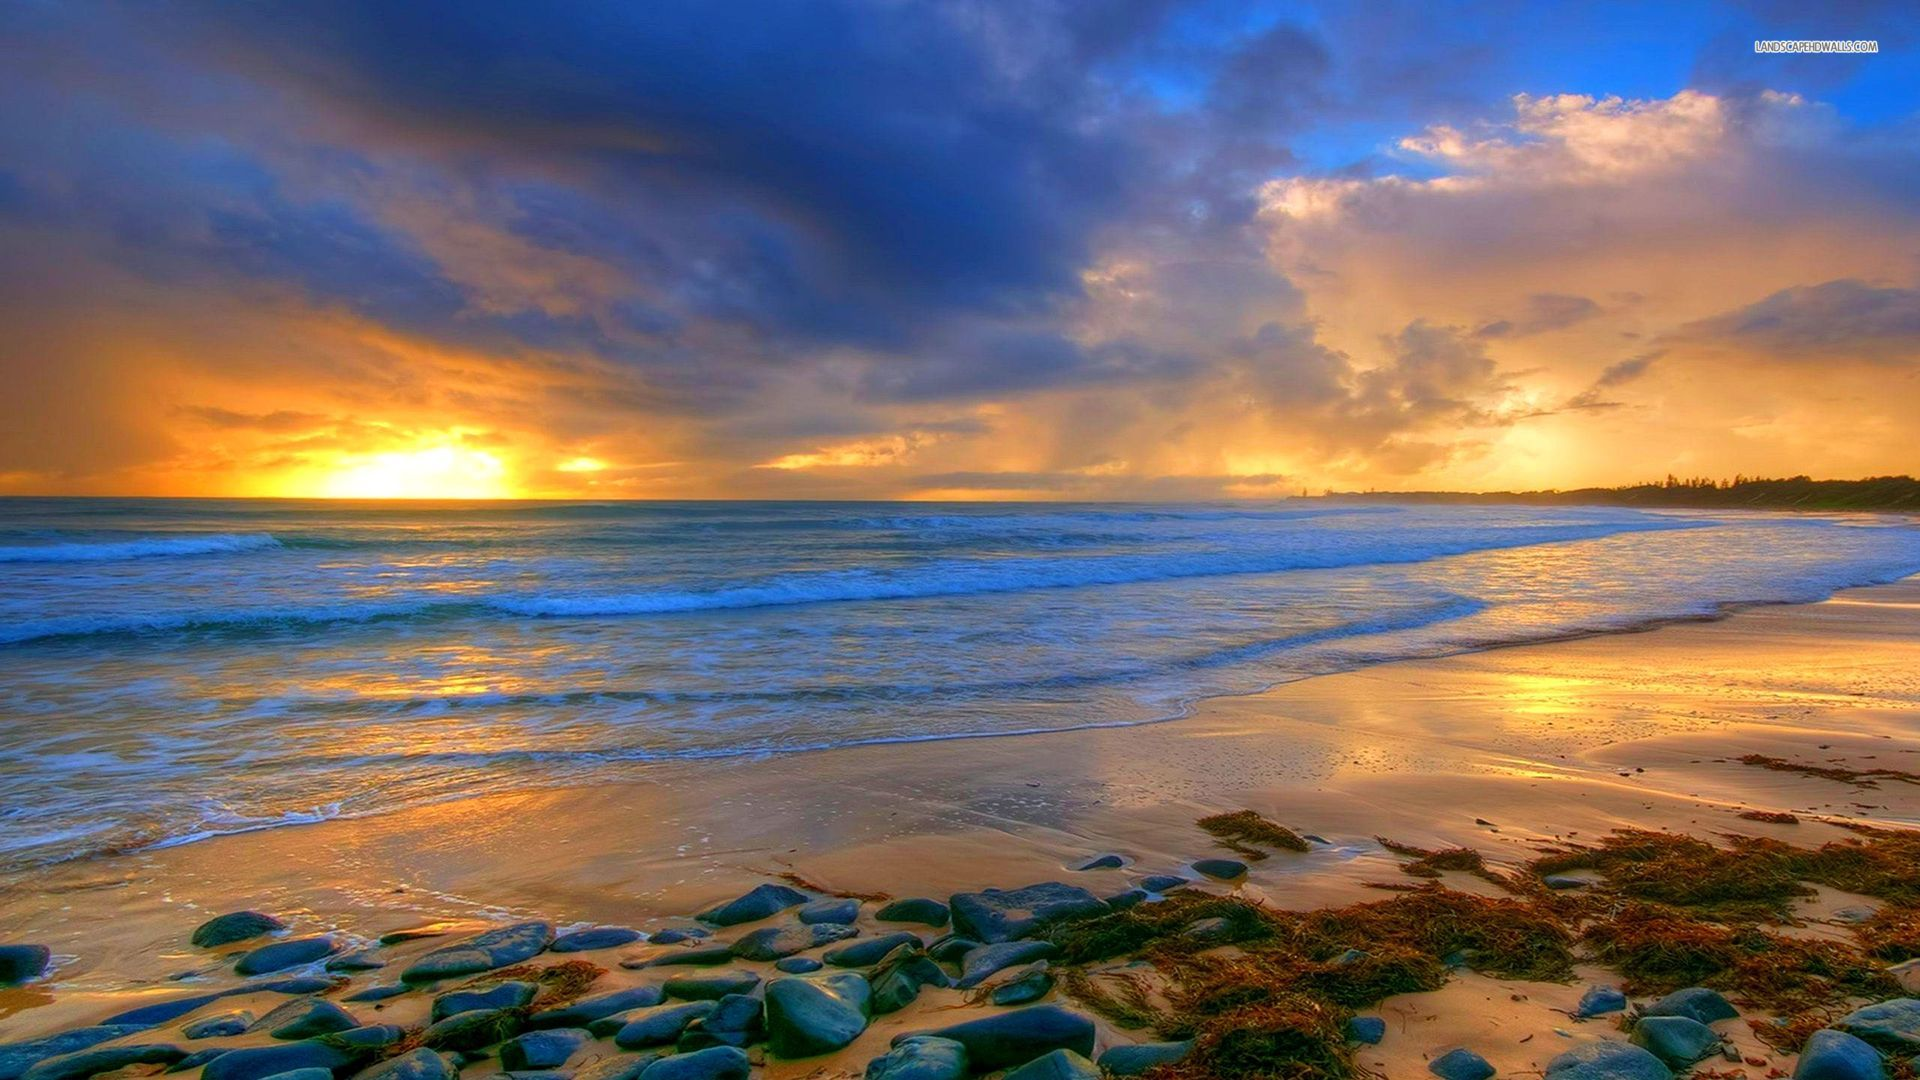 ... Calm beach in the sunset wallpaper 1920x1080 1080p ...